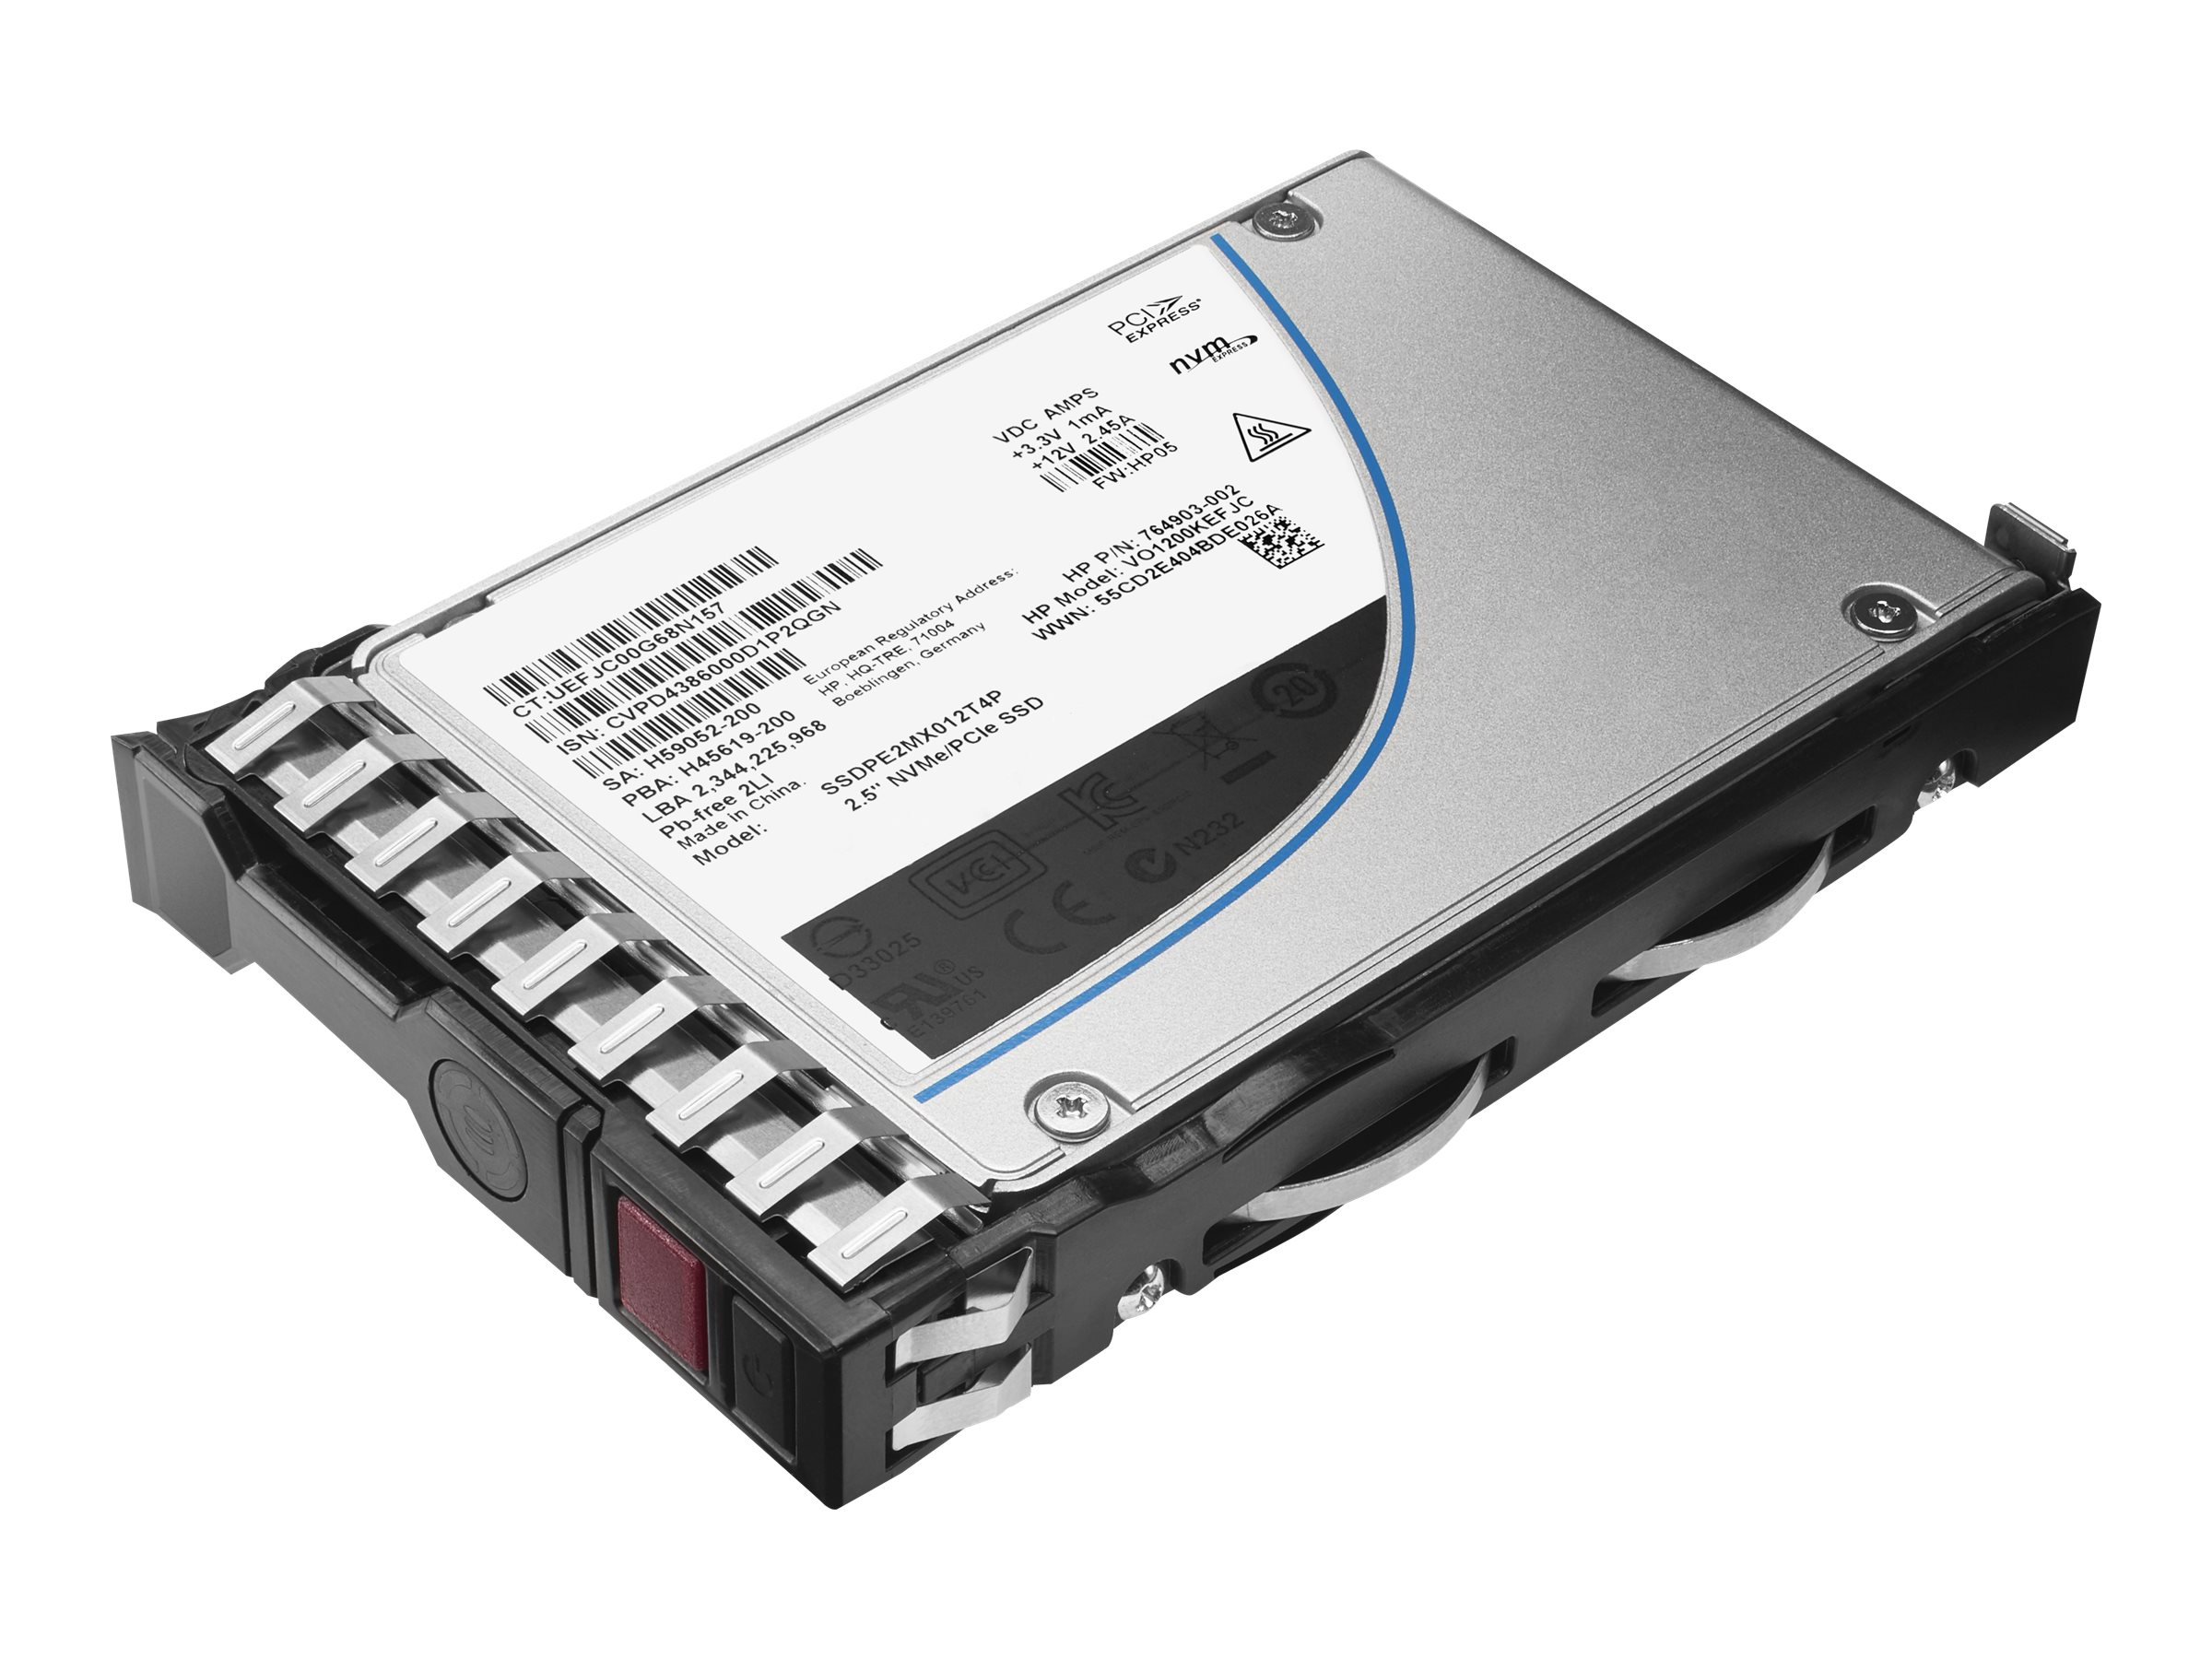 HPE 200GB 6G SATA Write Intensive-2 LFF 3.5-in SCC SSD